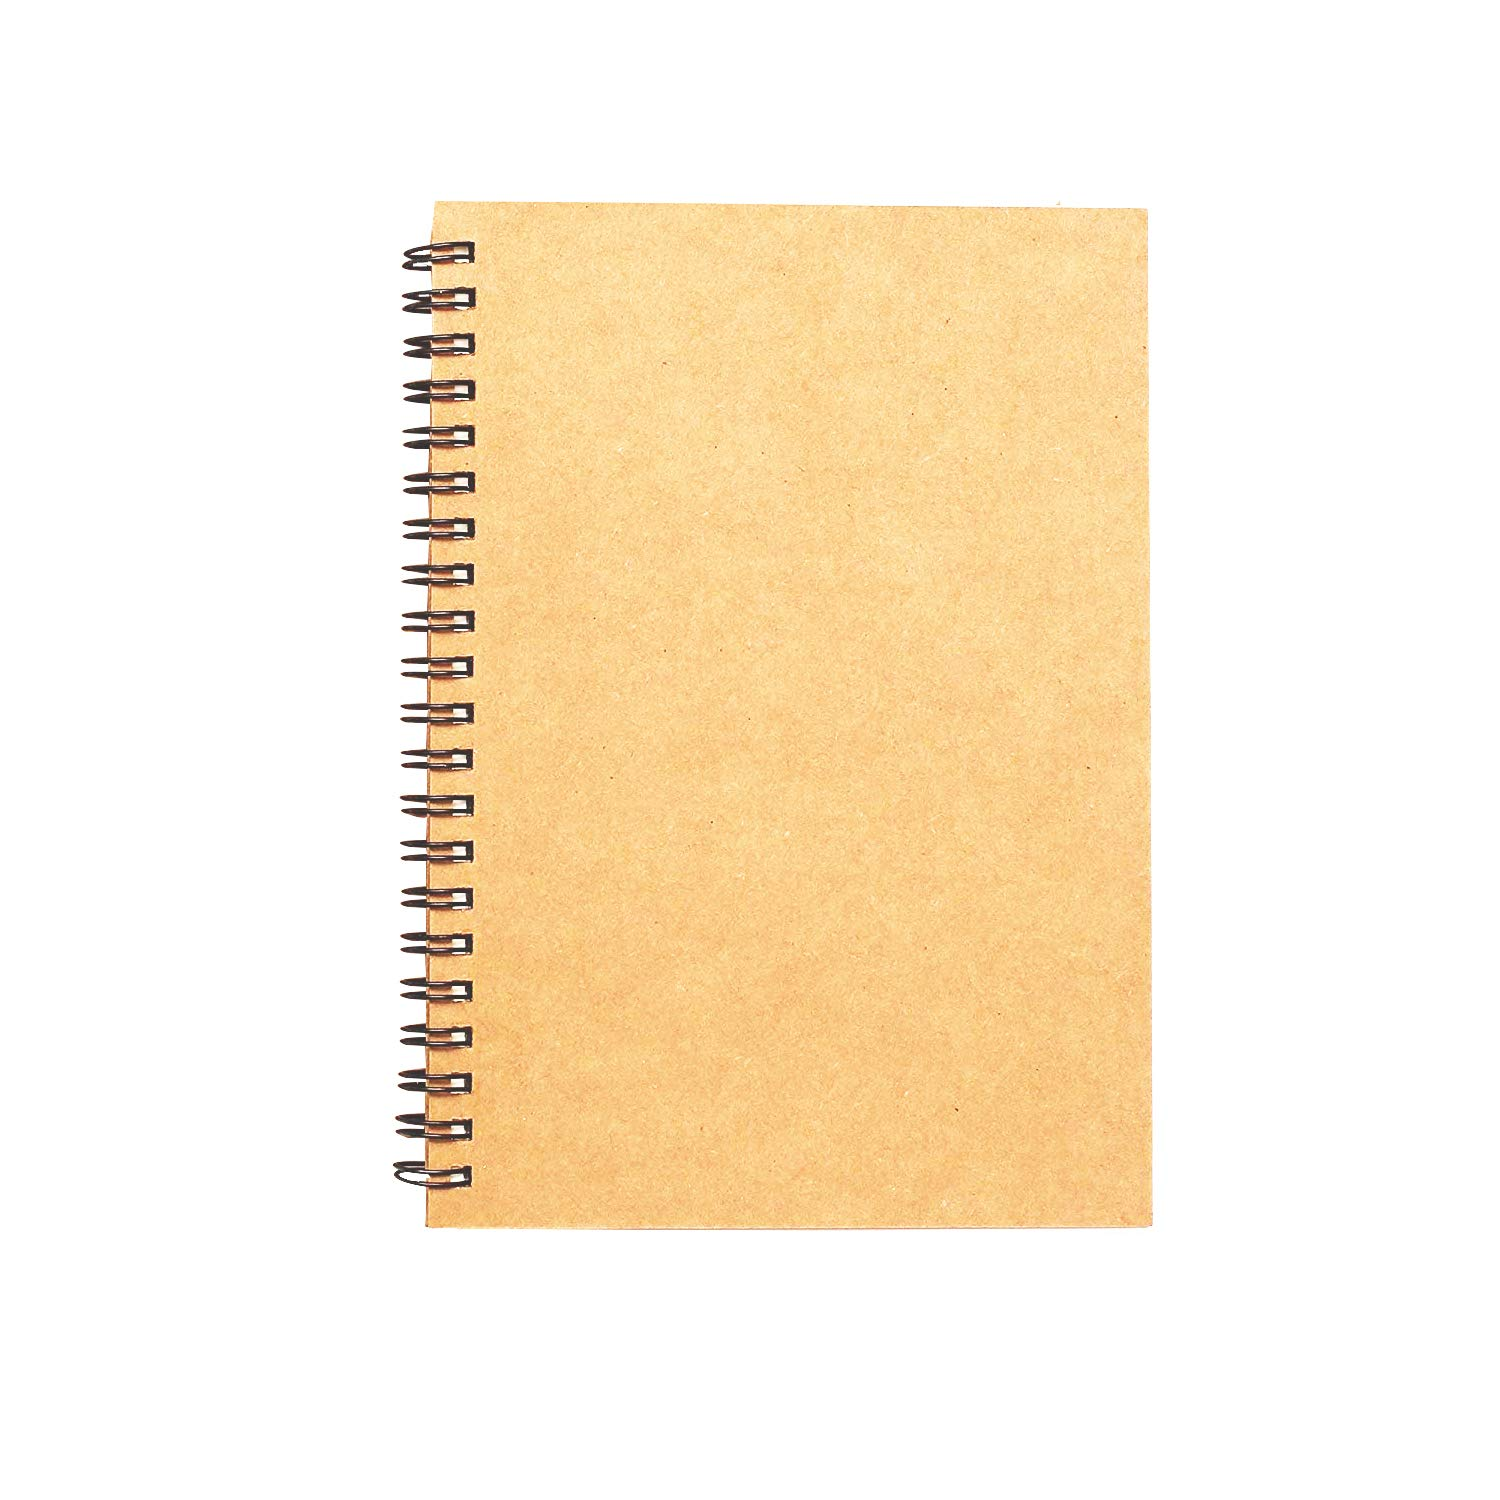 Spiral Sketch Book Kraft Cover Blank Sketch Pad Wirebound Sketching for Drawing Painting 8.5x11-Inch (1 Pack) 200 Pages/ 100 Sheets